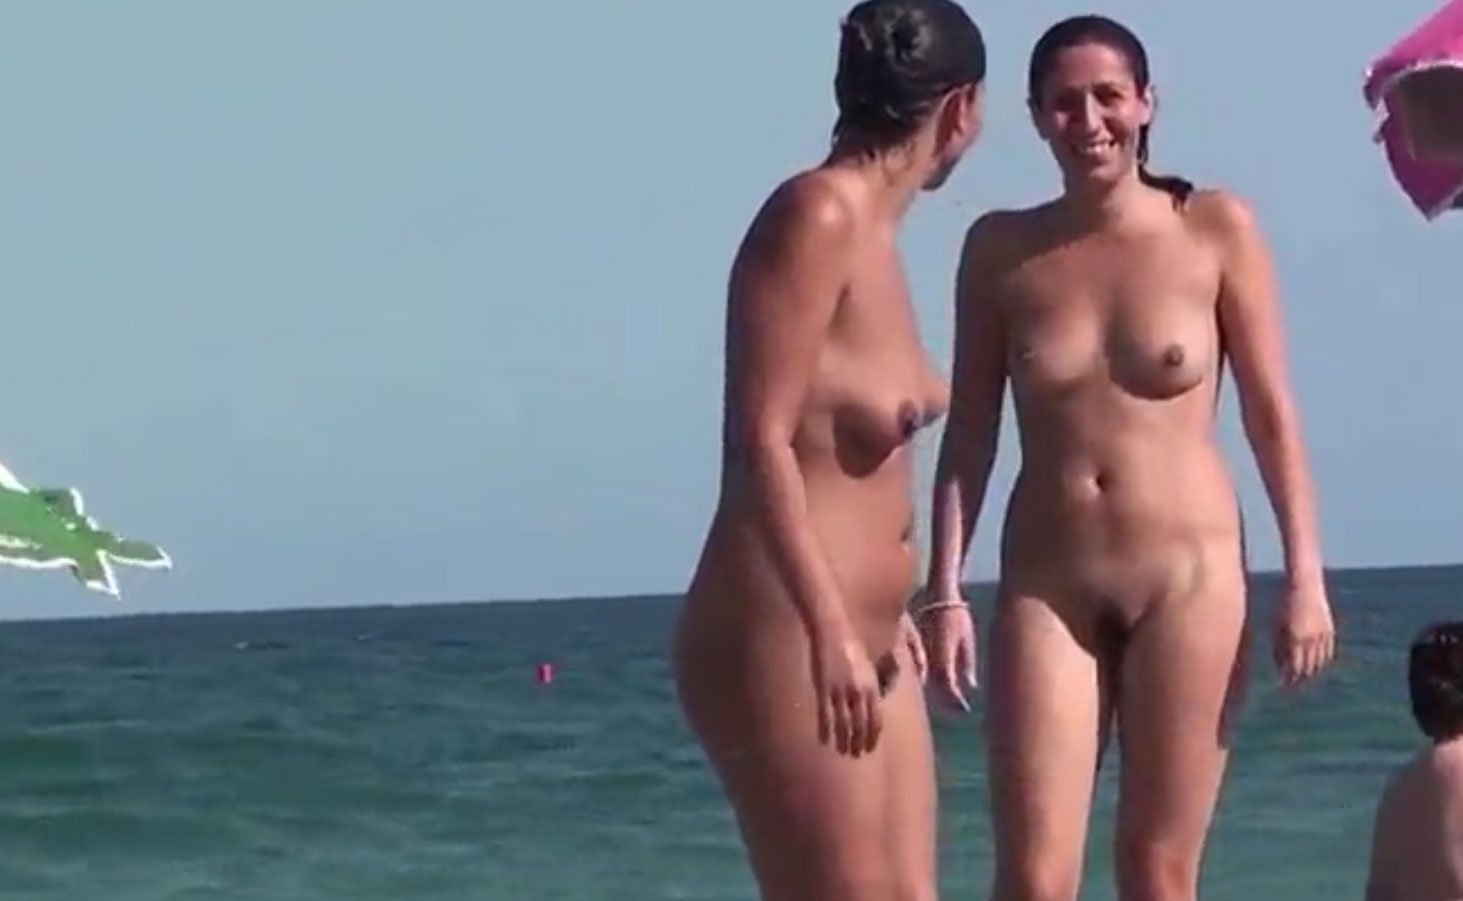 Enjoy a quarter hour of Naked beach